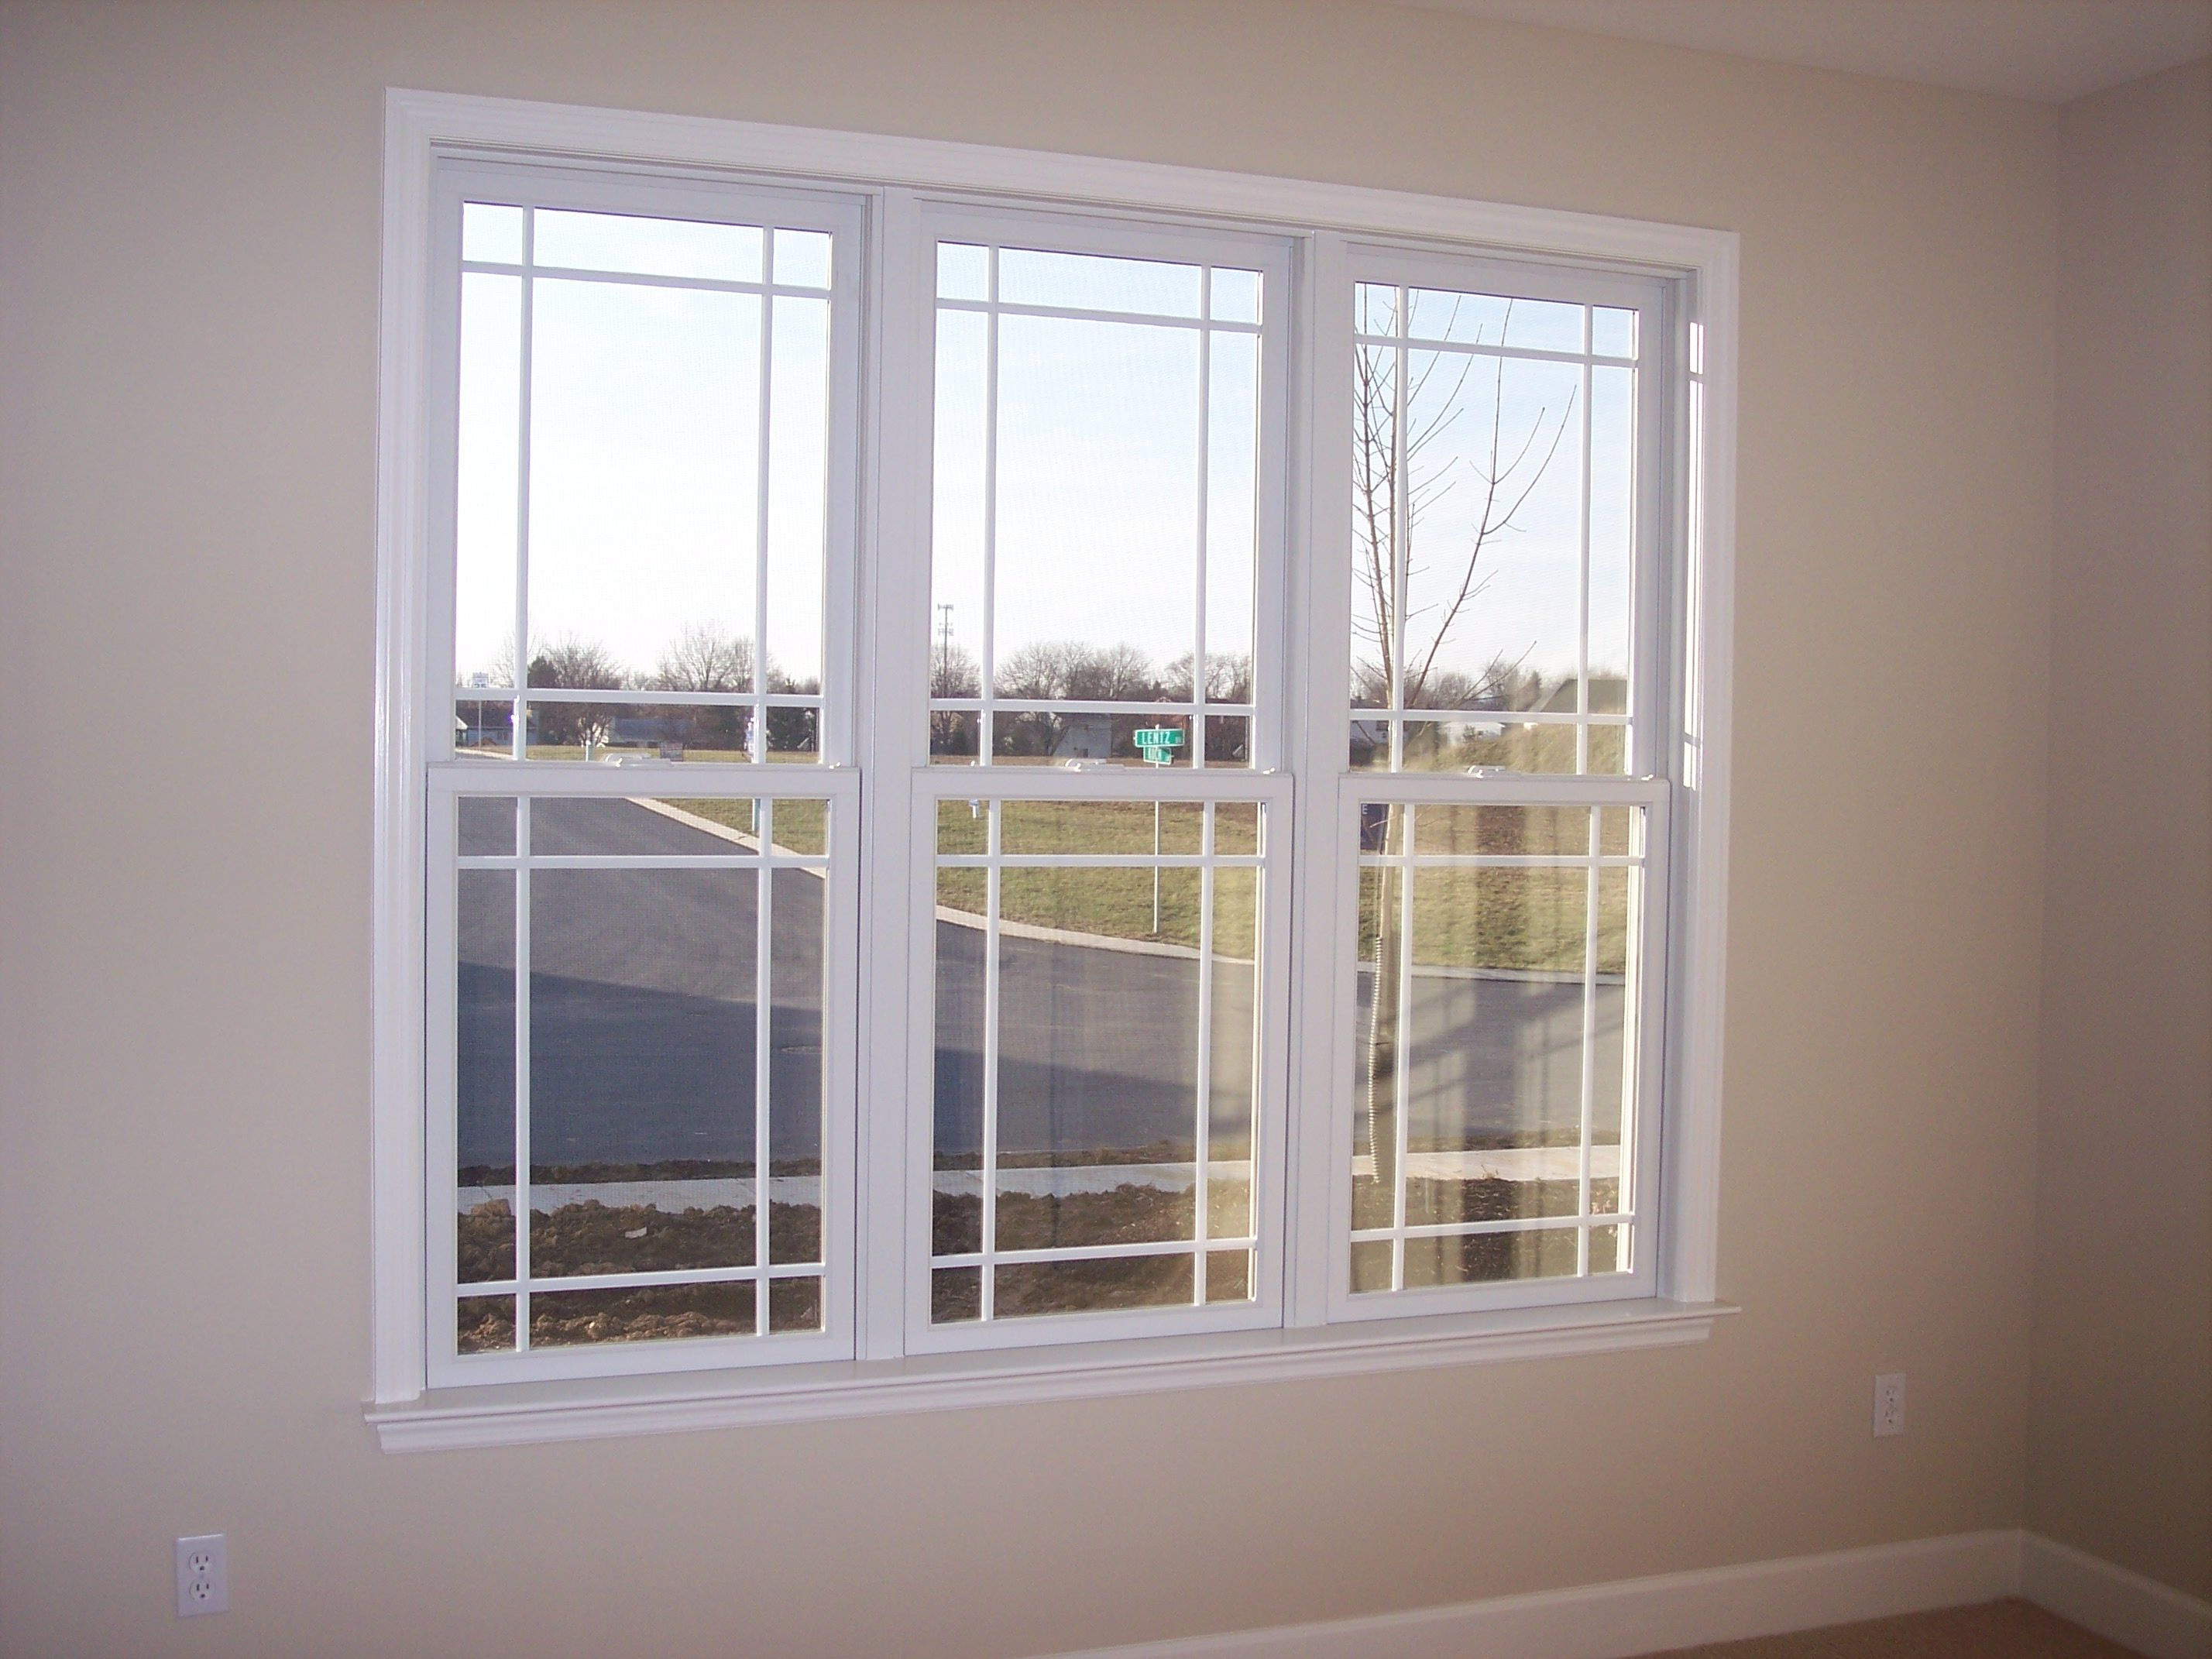 large windows window designs for homes window pictures window designs for homes - Windows Designs For Home